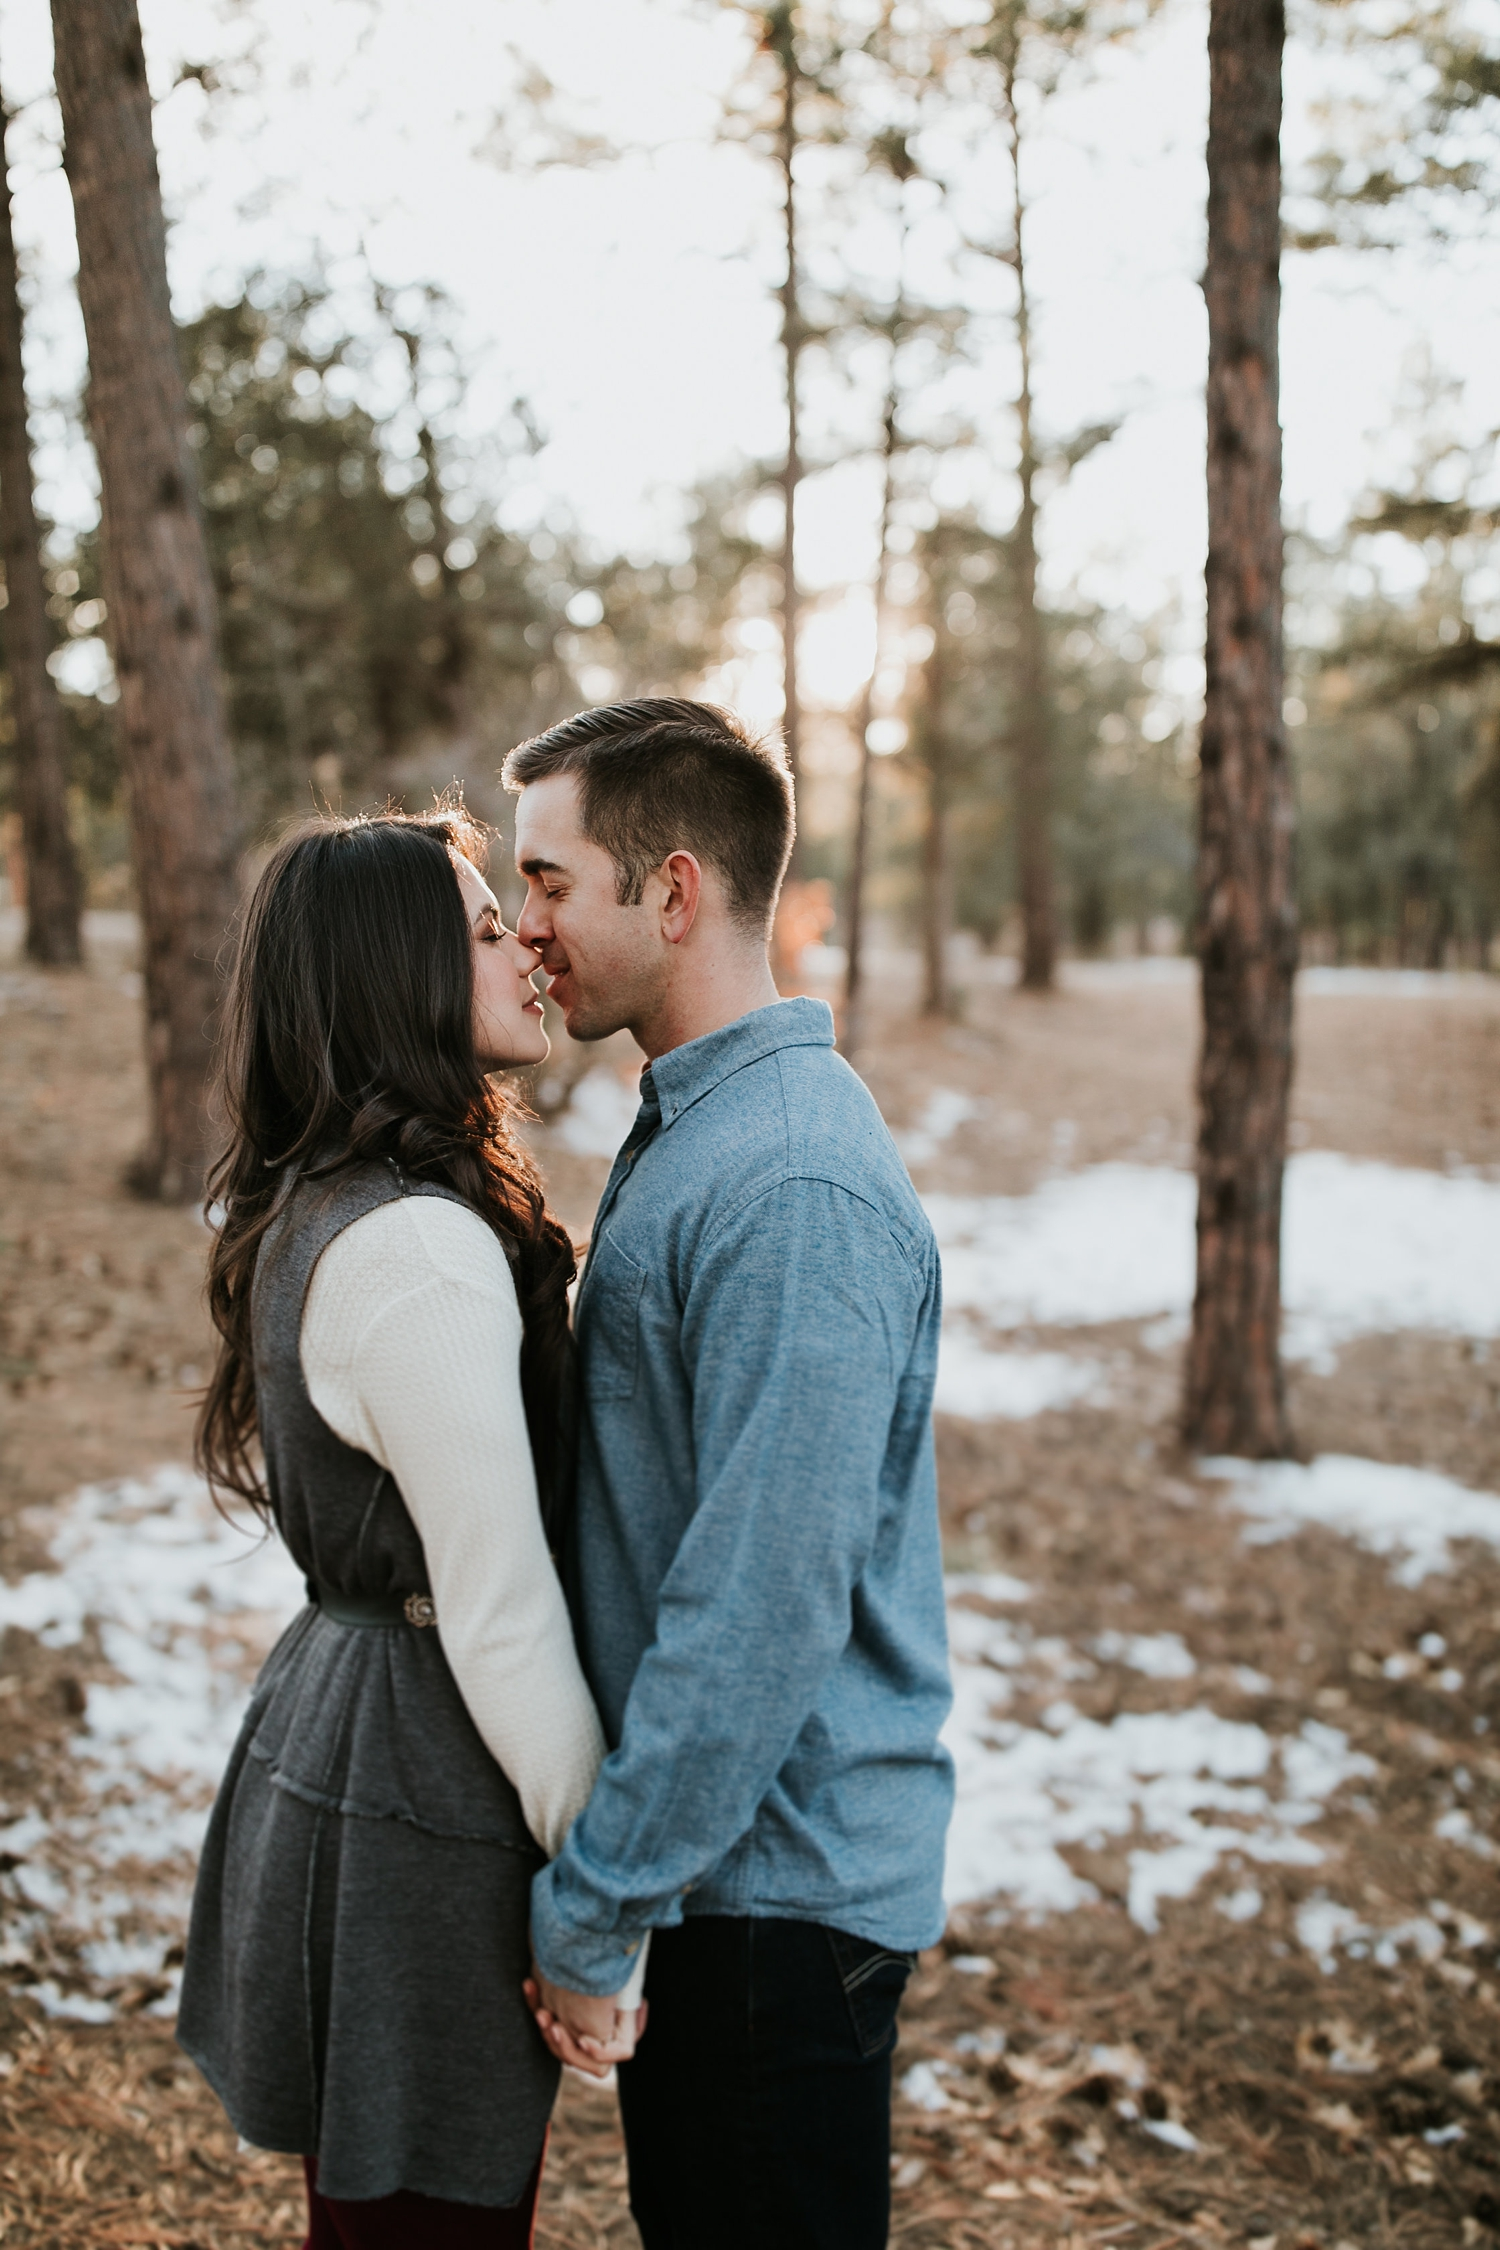 Alicia+lucia+photography+-+albuquerque+wedding+photographer+-+santa+fe+wedding+photography+-+new+mexico+wedding+photographer+-+new+mexico+engagement+-+winter+engagement+session_0027.jpg